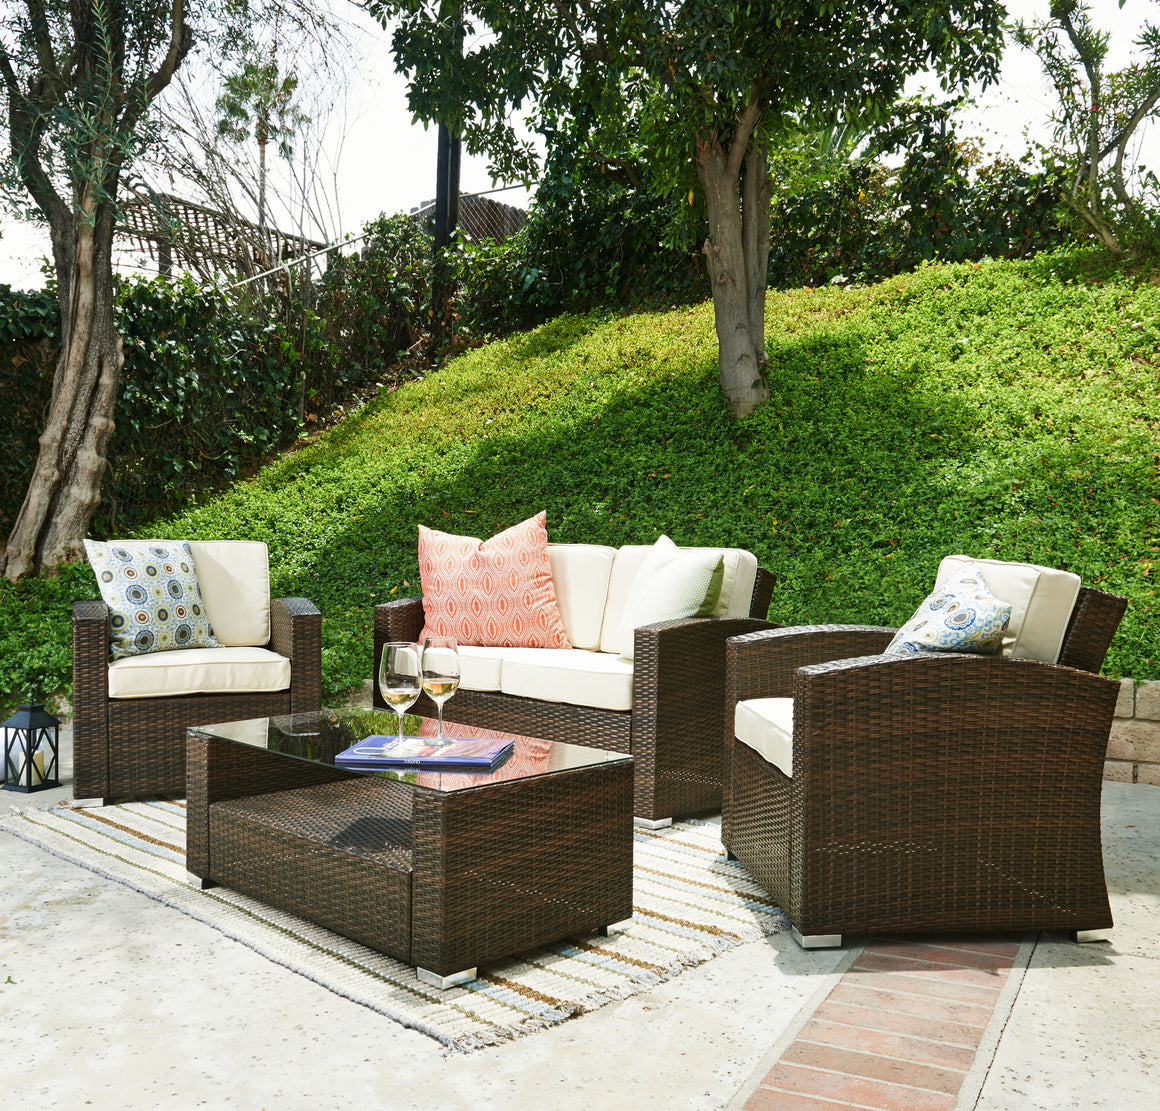 W Unlimited Emma Collection Outdoor Garden Patio Furniture 4PC set w/ Table , W Unlimited- grayburd